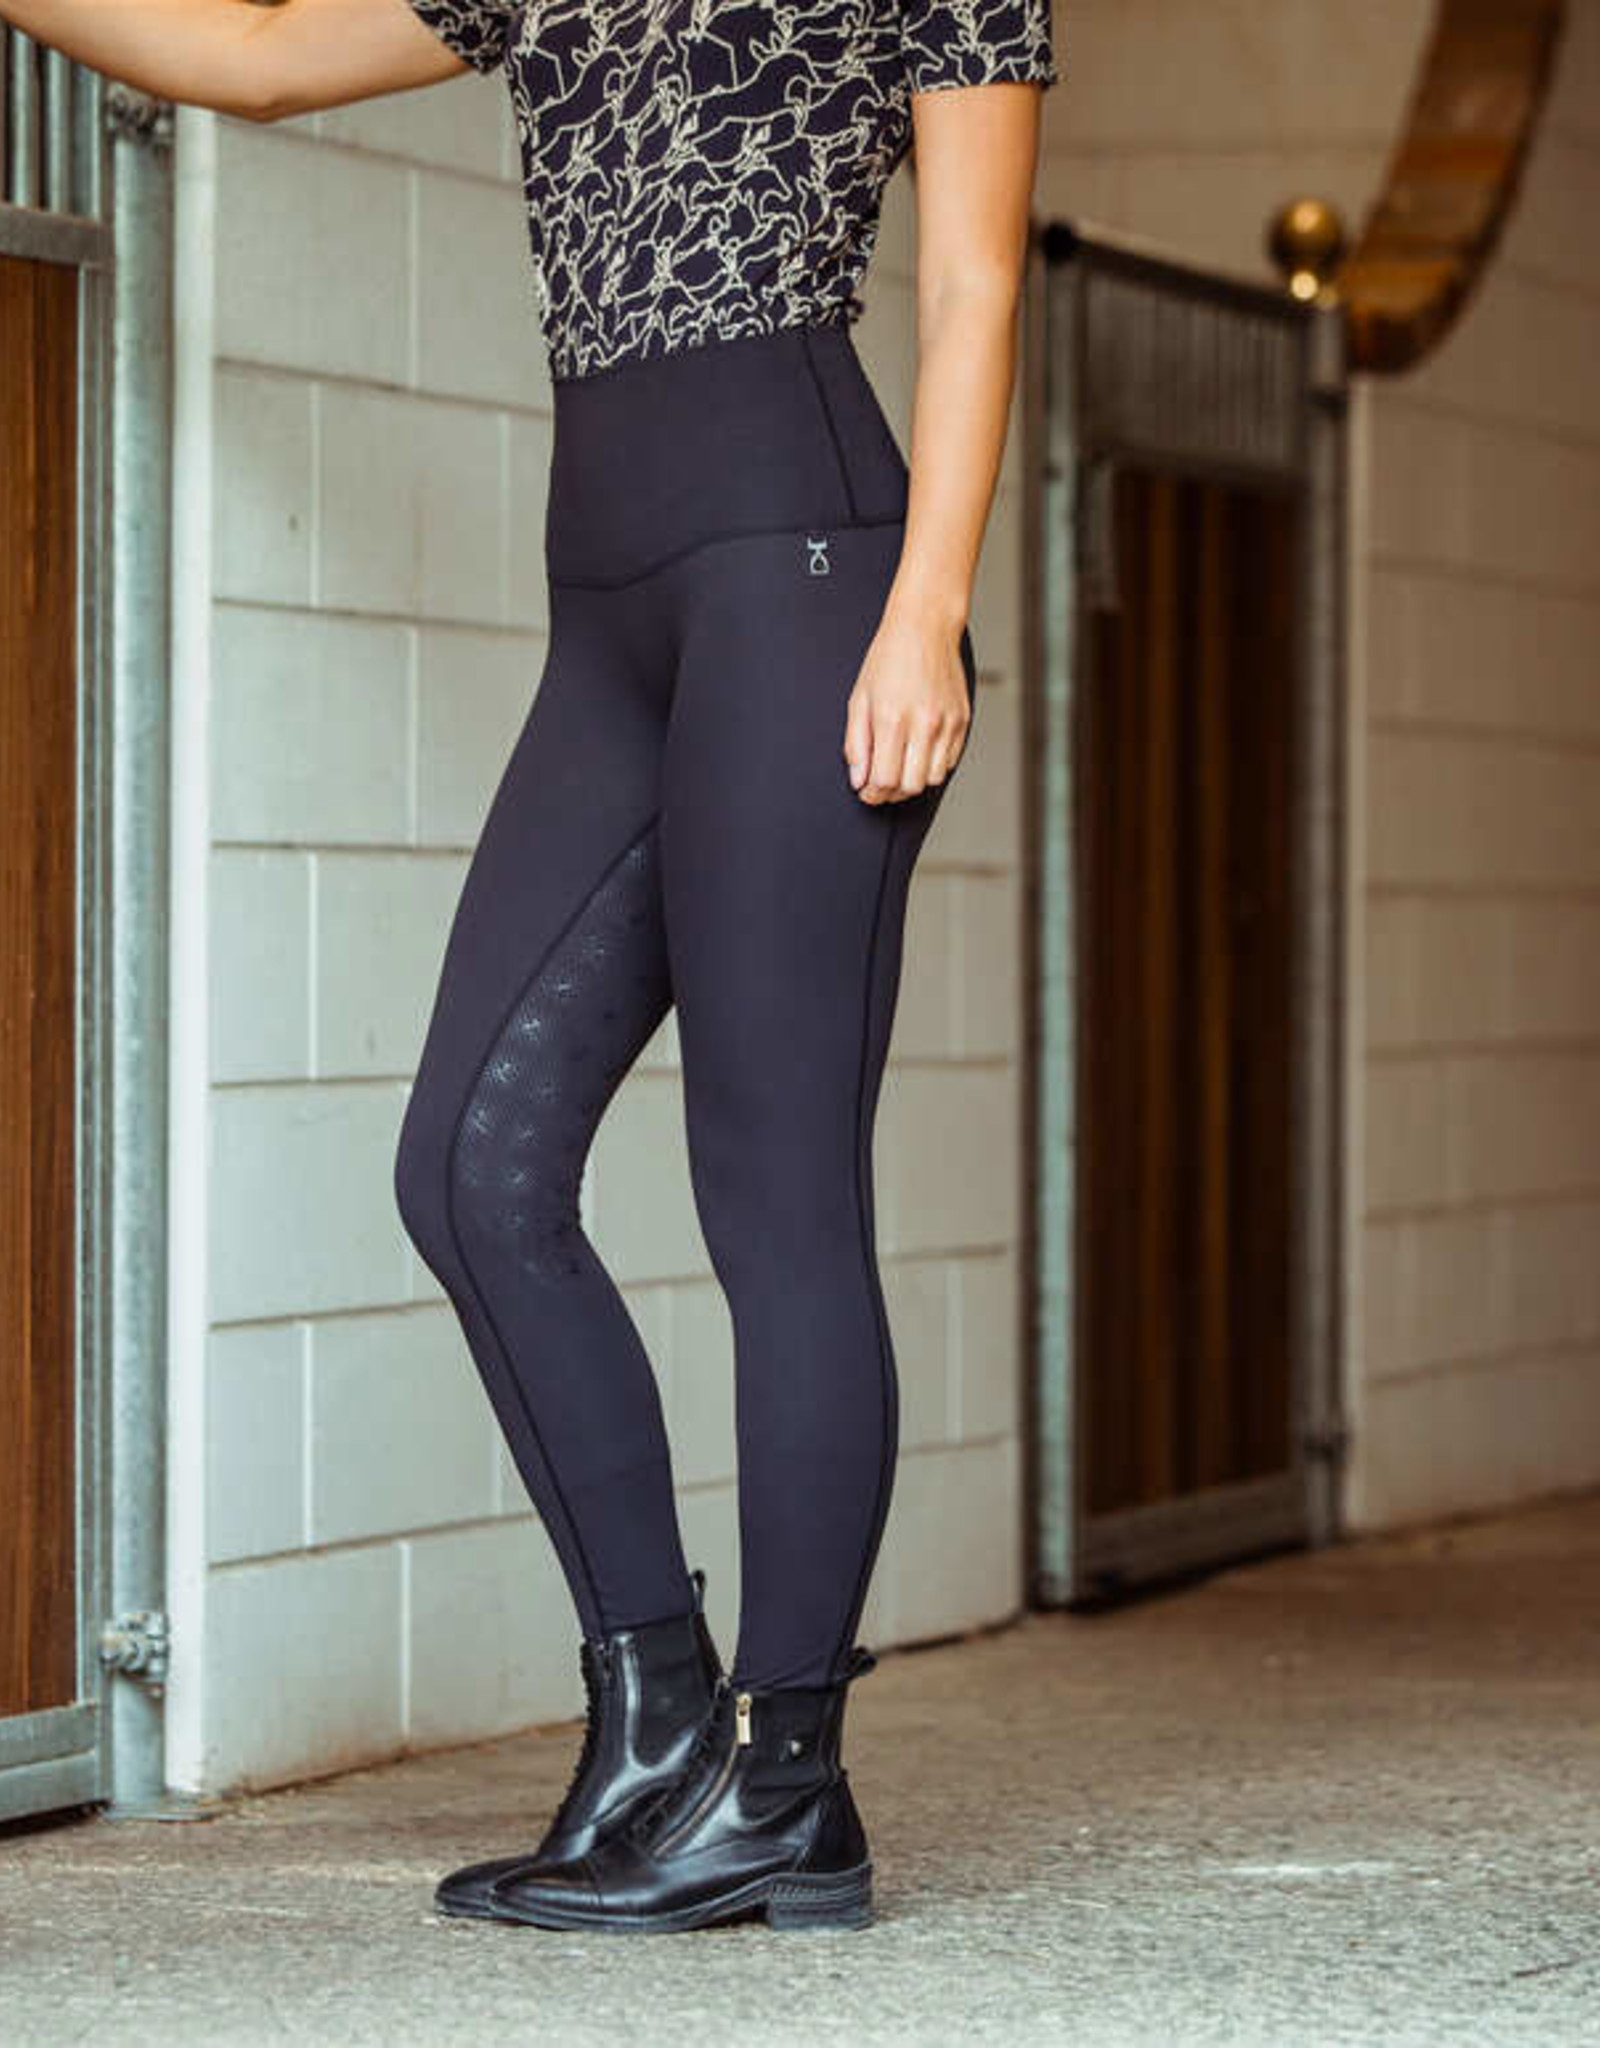 HORZE JULIENNE FULL SEAT COMPRESSION TIGHTS